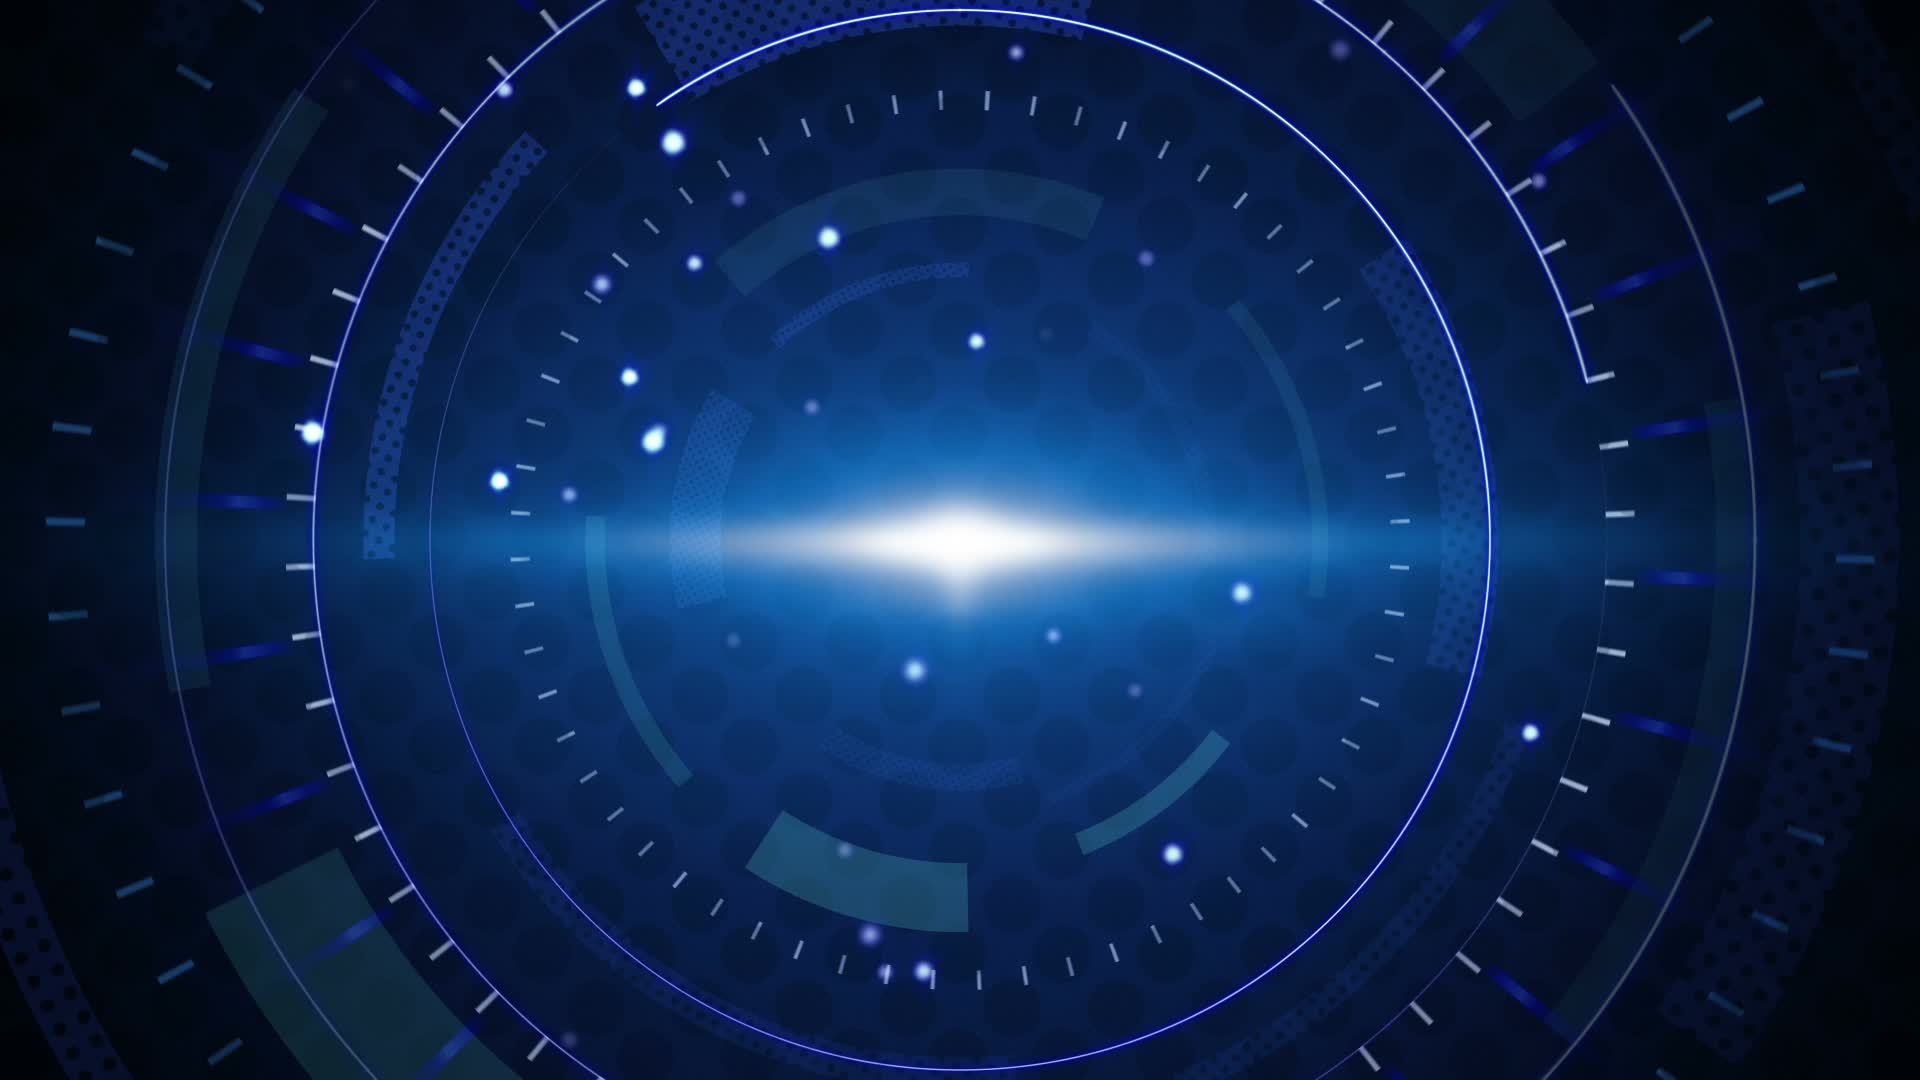 Blue techno circles loop background Video Clip 22759537 1920x1080